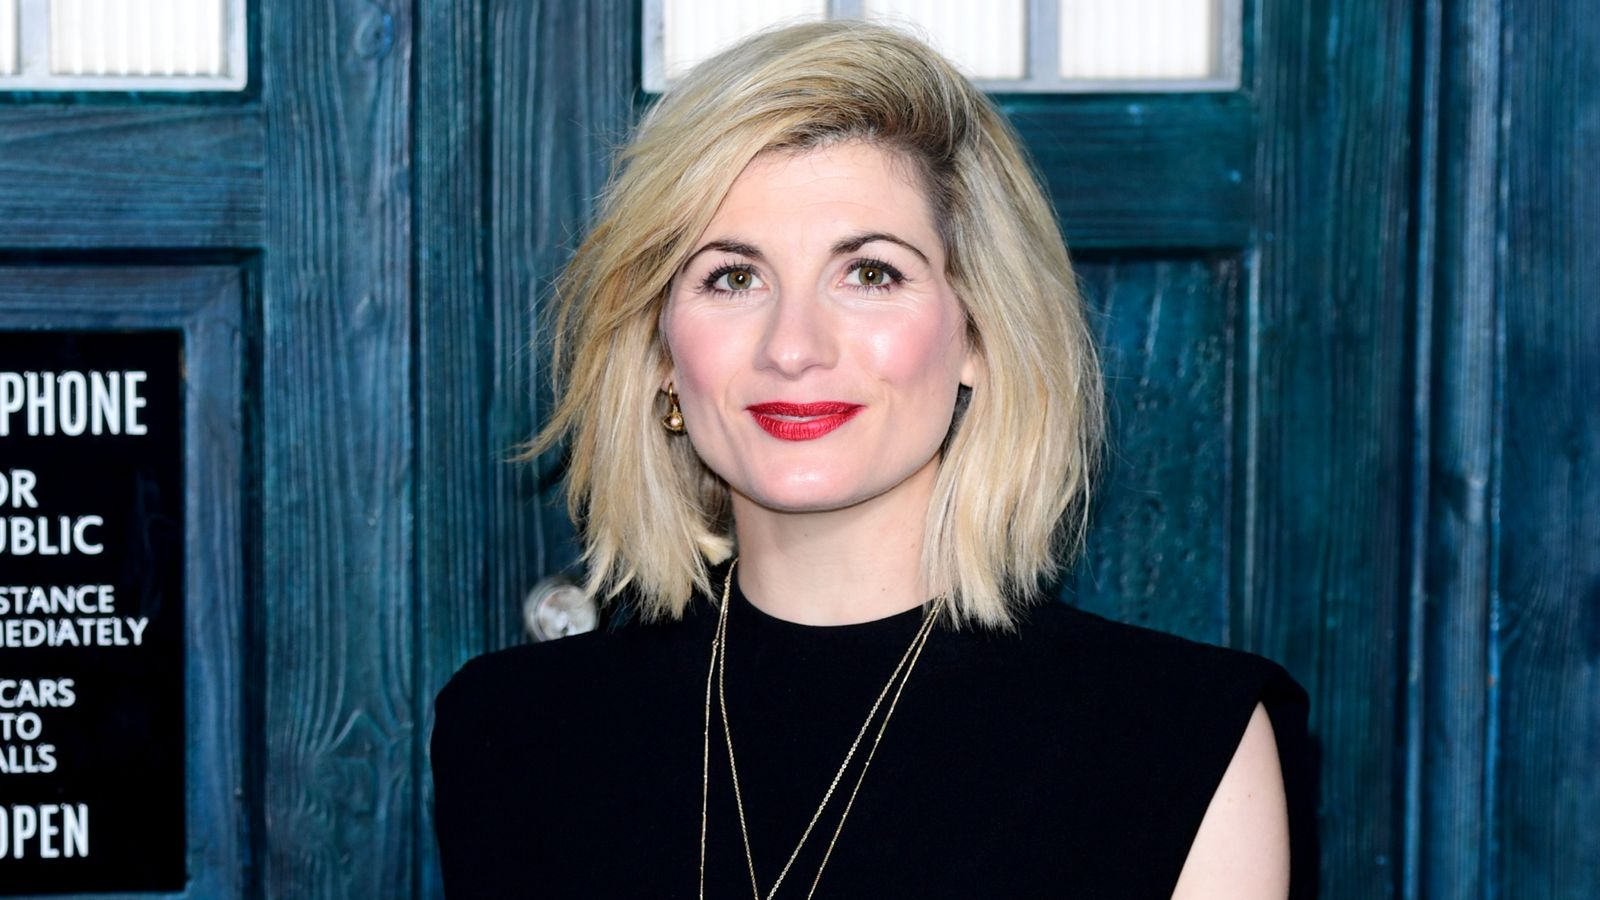 Doctor Who: Jodie Whittaker, the show's first female lead, will leave TV drama next year